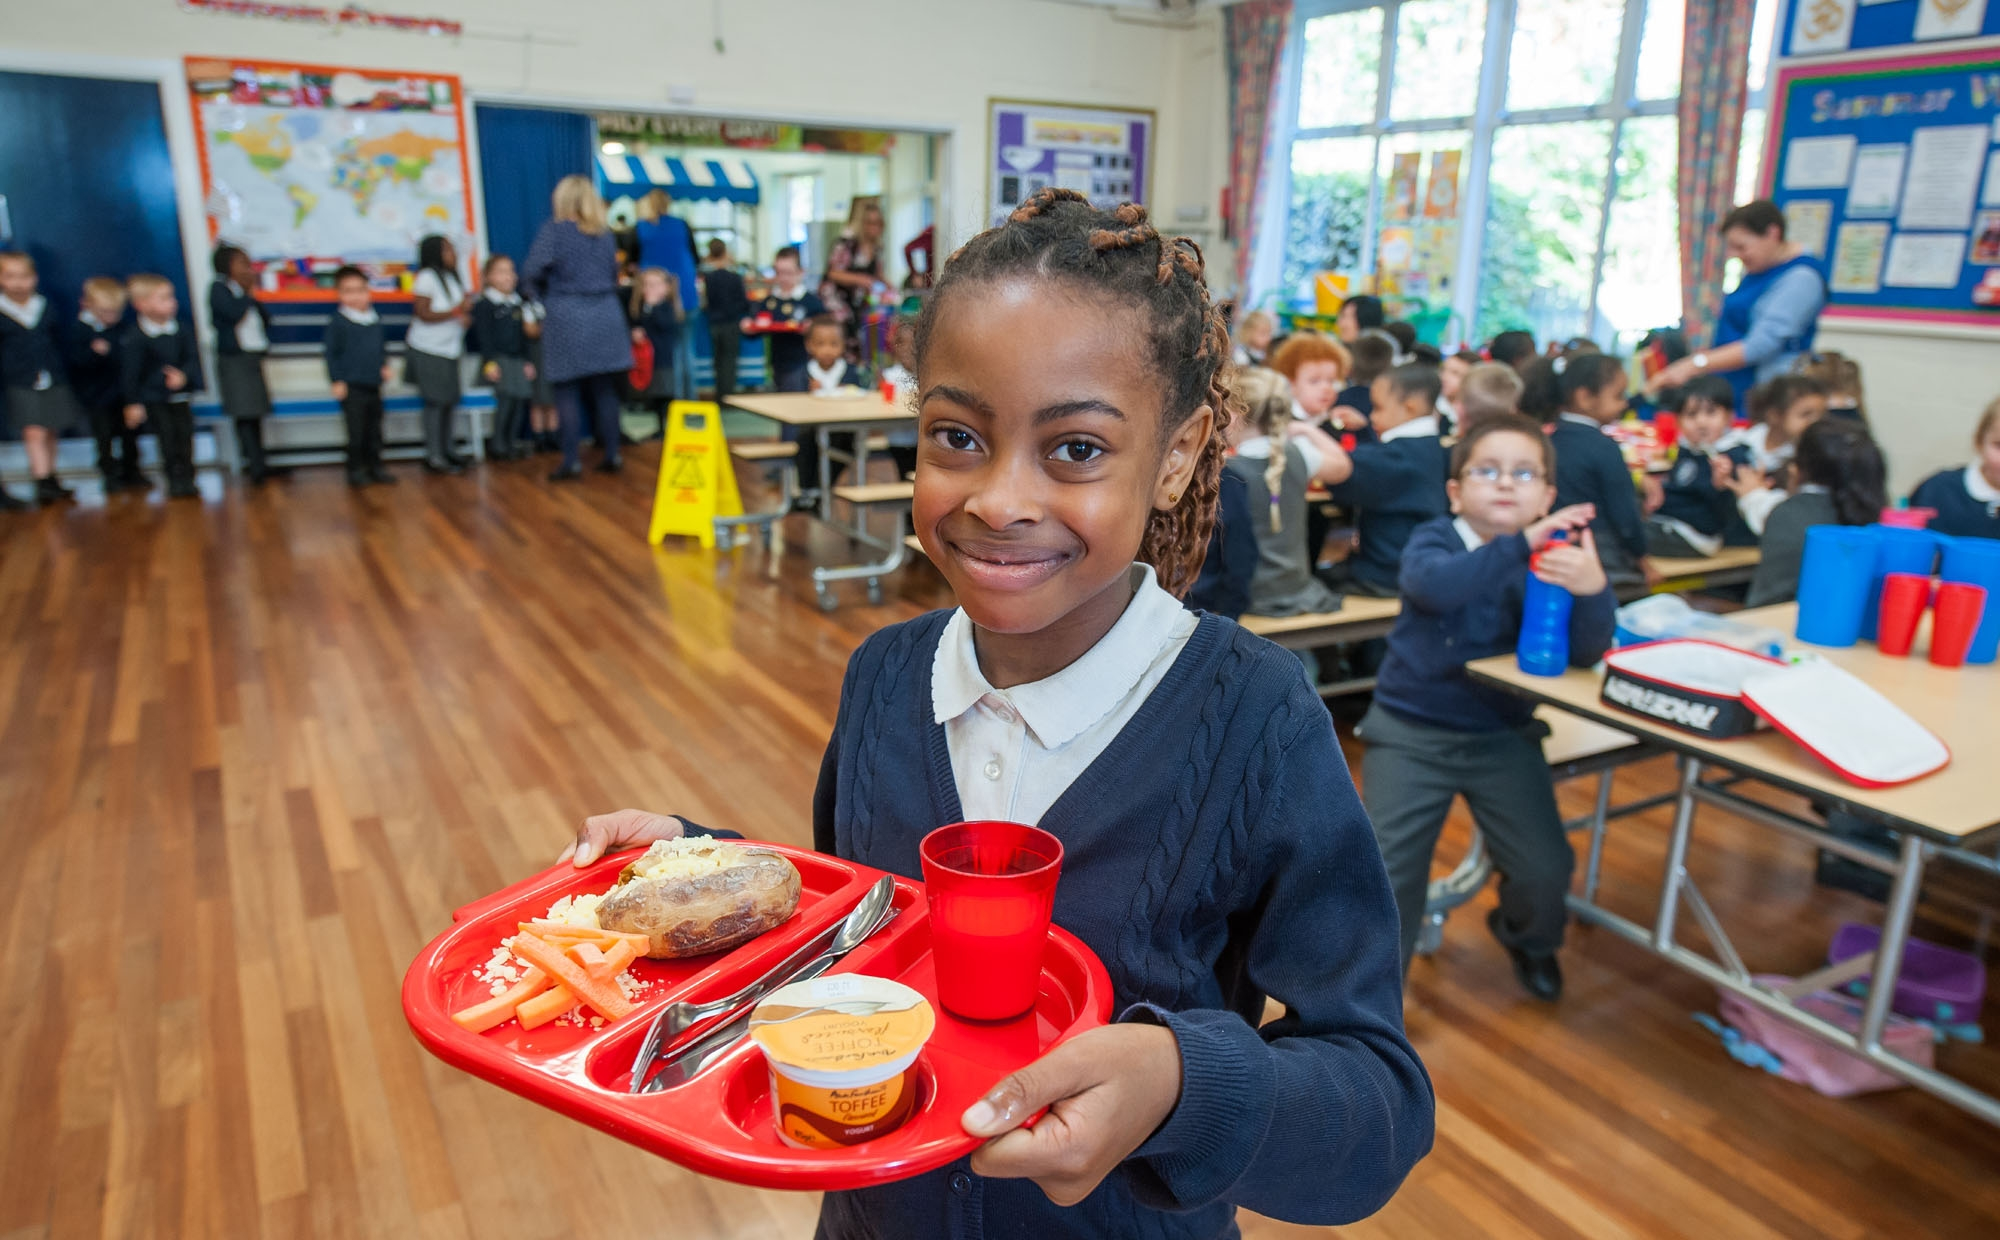 Pupil at lunchtime at St Philip's CE Primary School